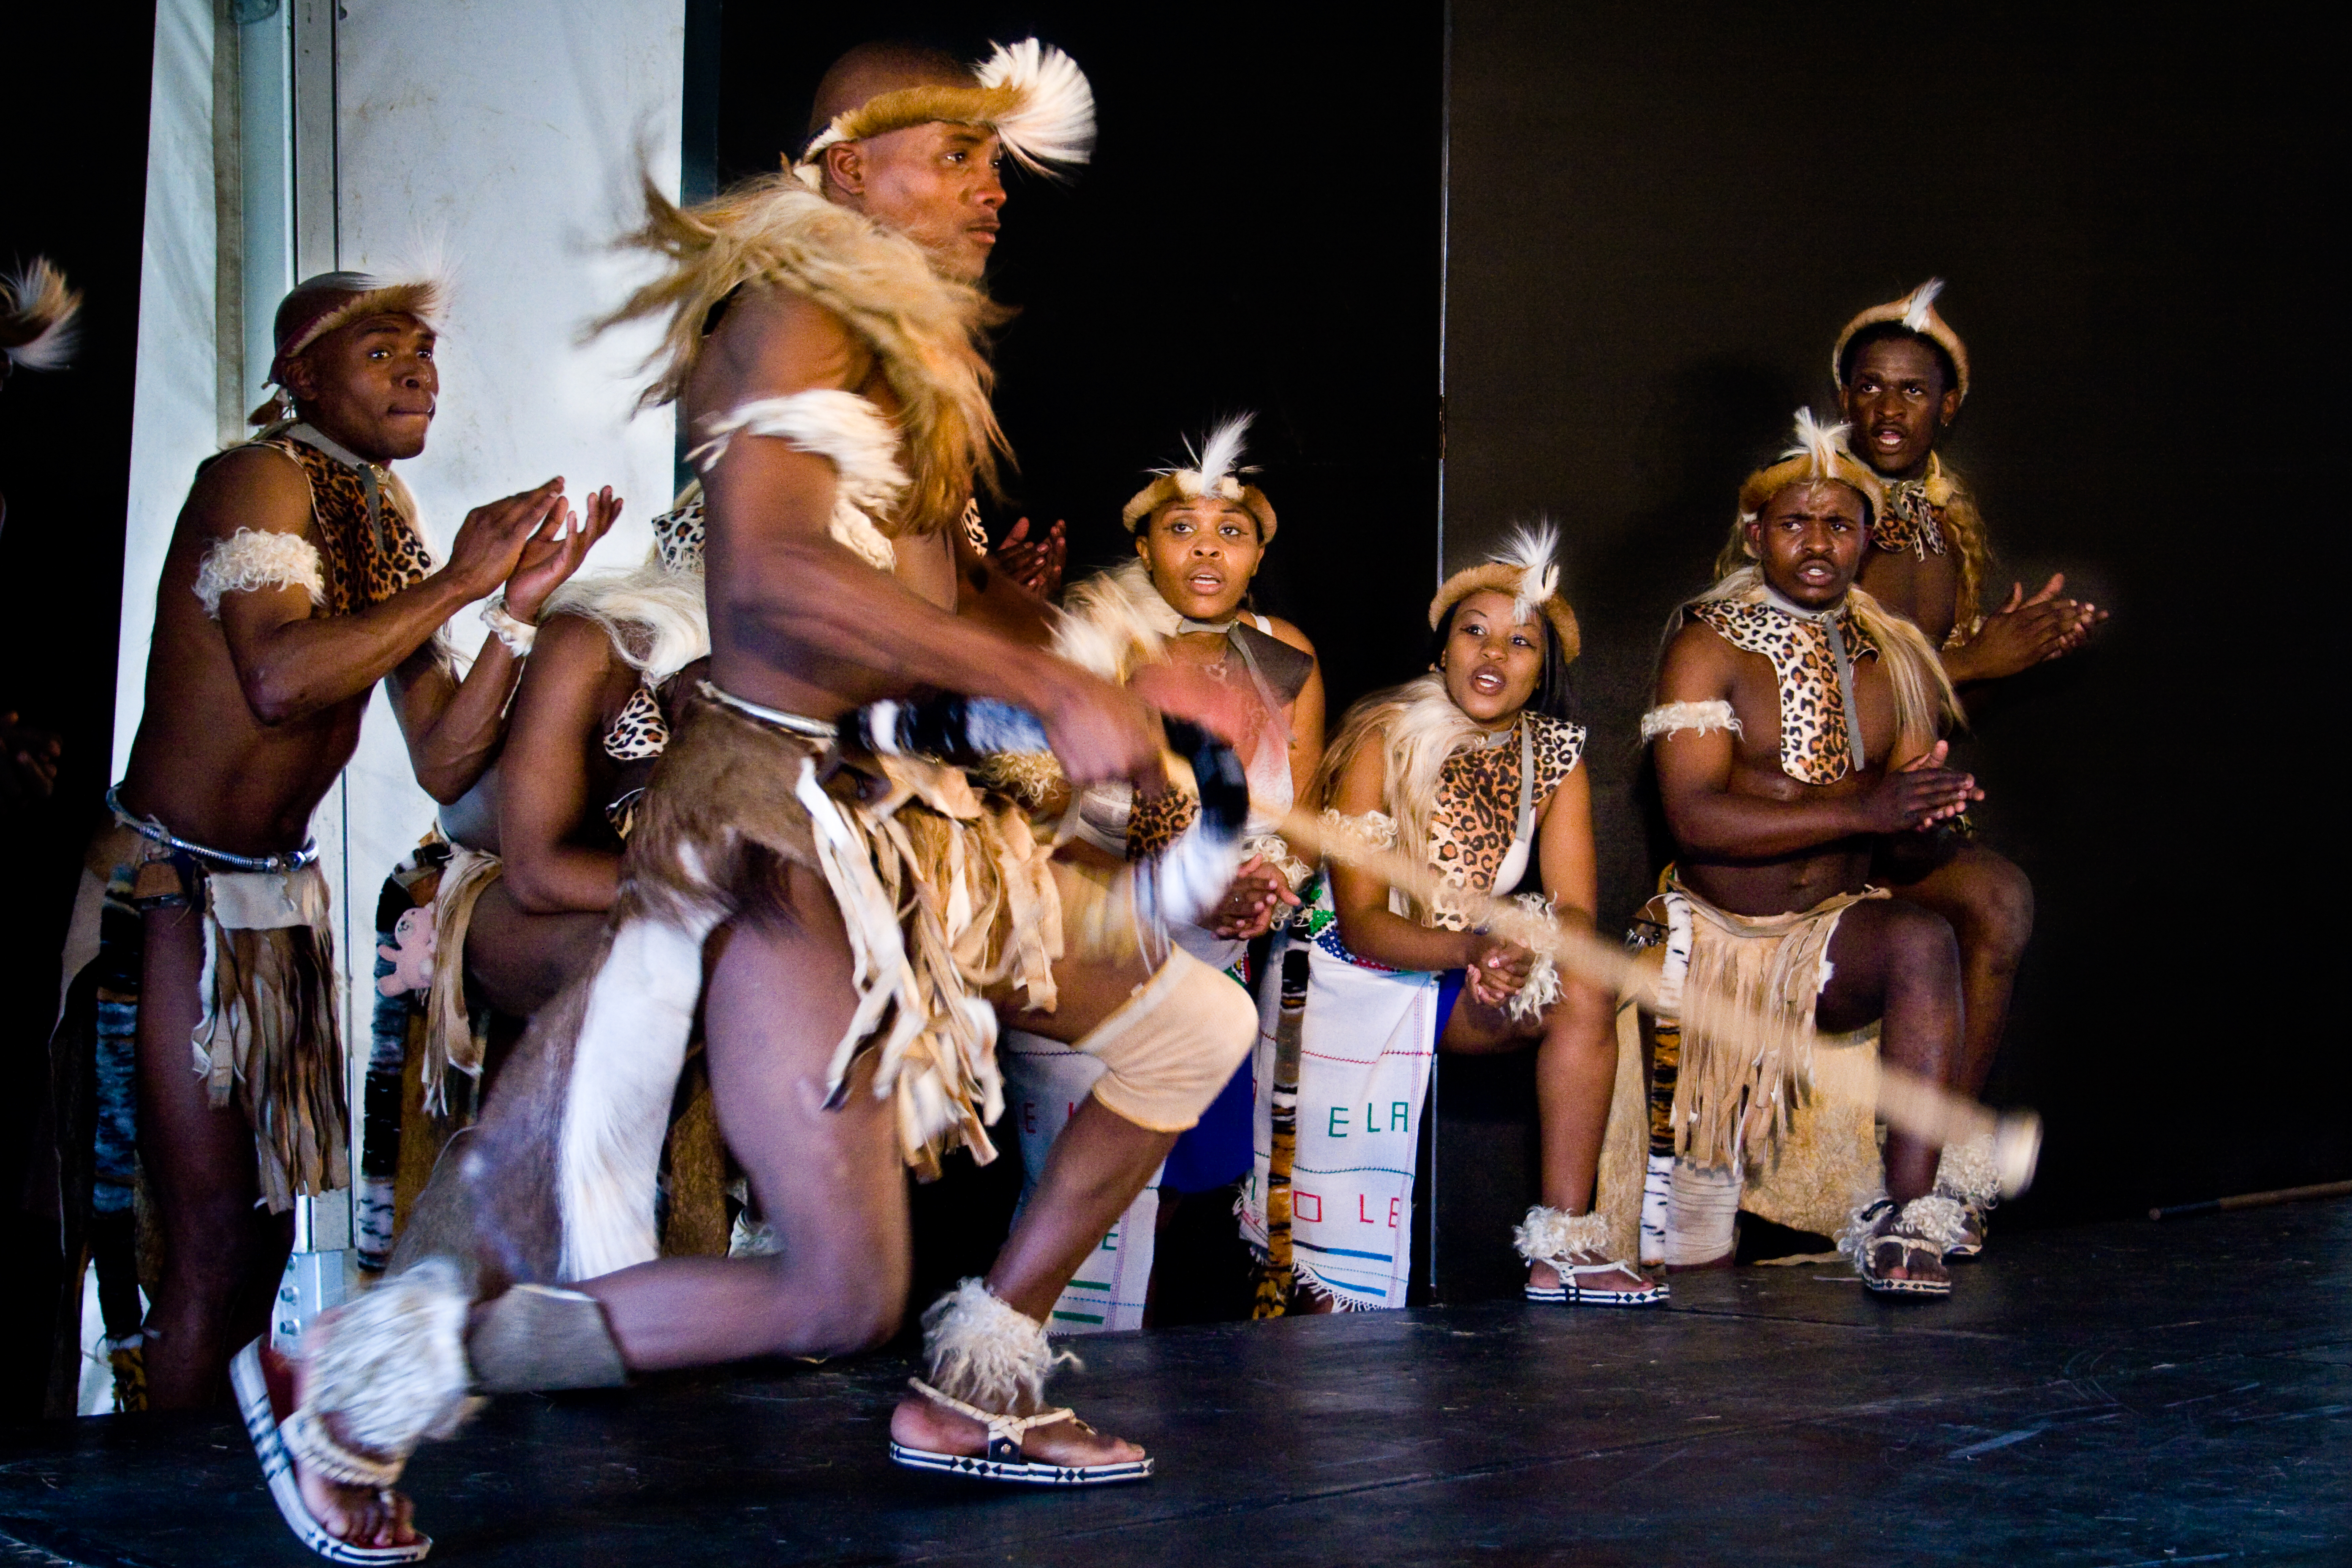 Mzansi Zulu dancers perform a lively and beautiful African dance for the Grahamstown festival, 6 July 2009. (Cuepix/Thyla Nel)